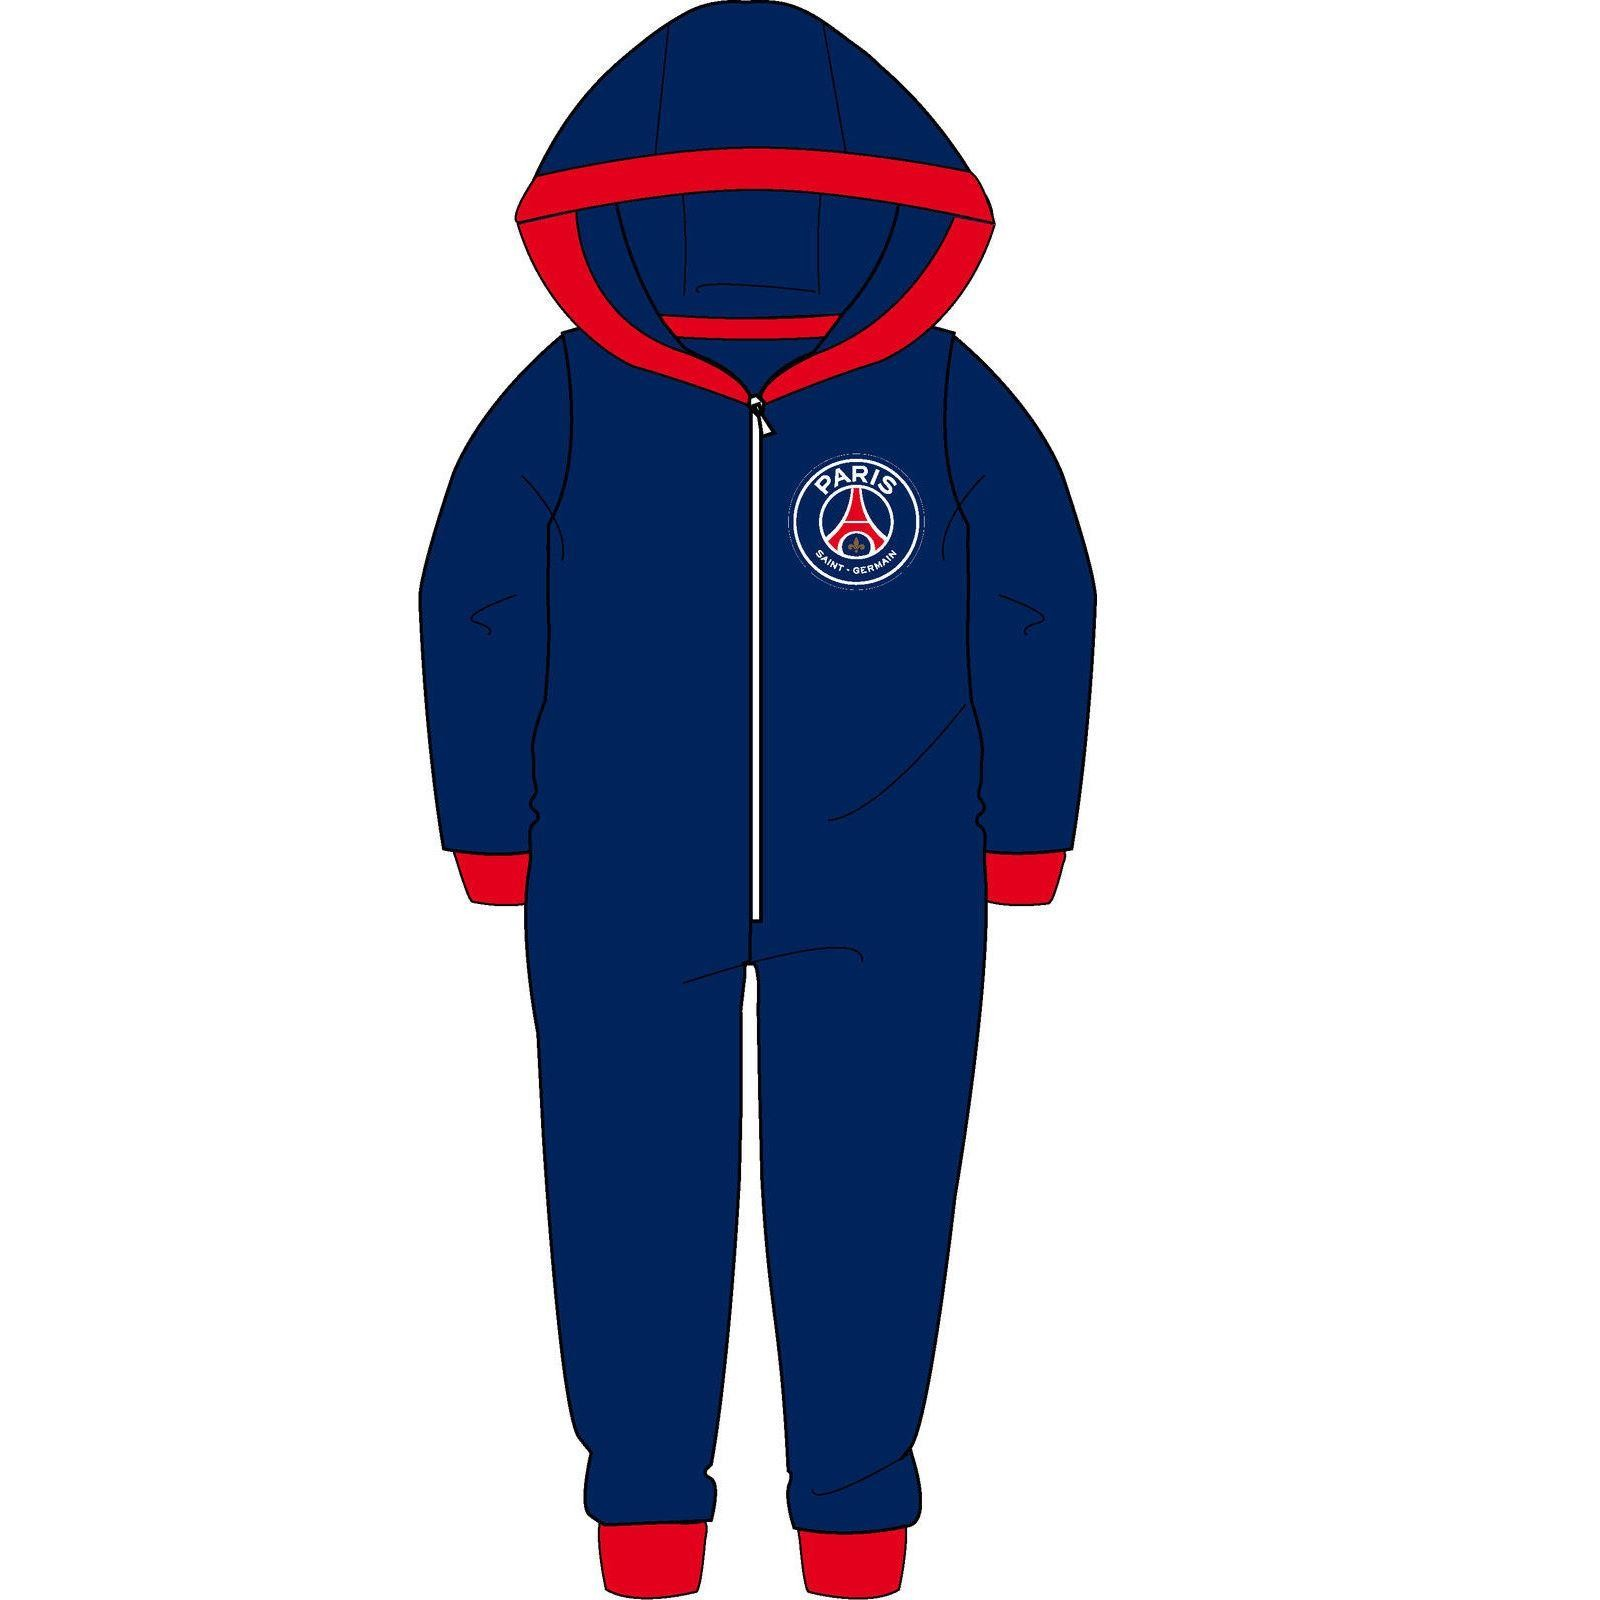 Children's Paris Saint Germain FC Fleece Onesie